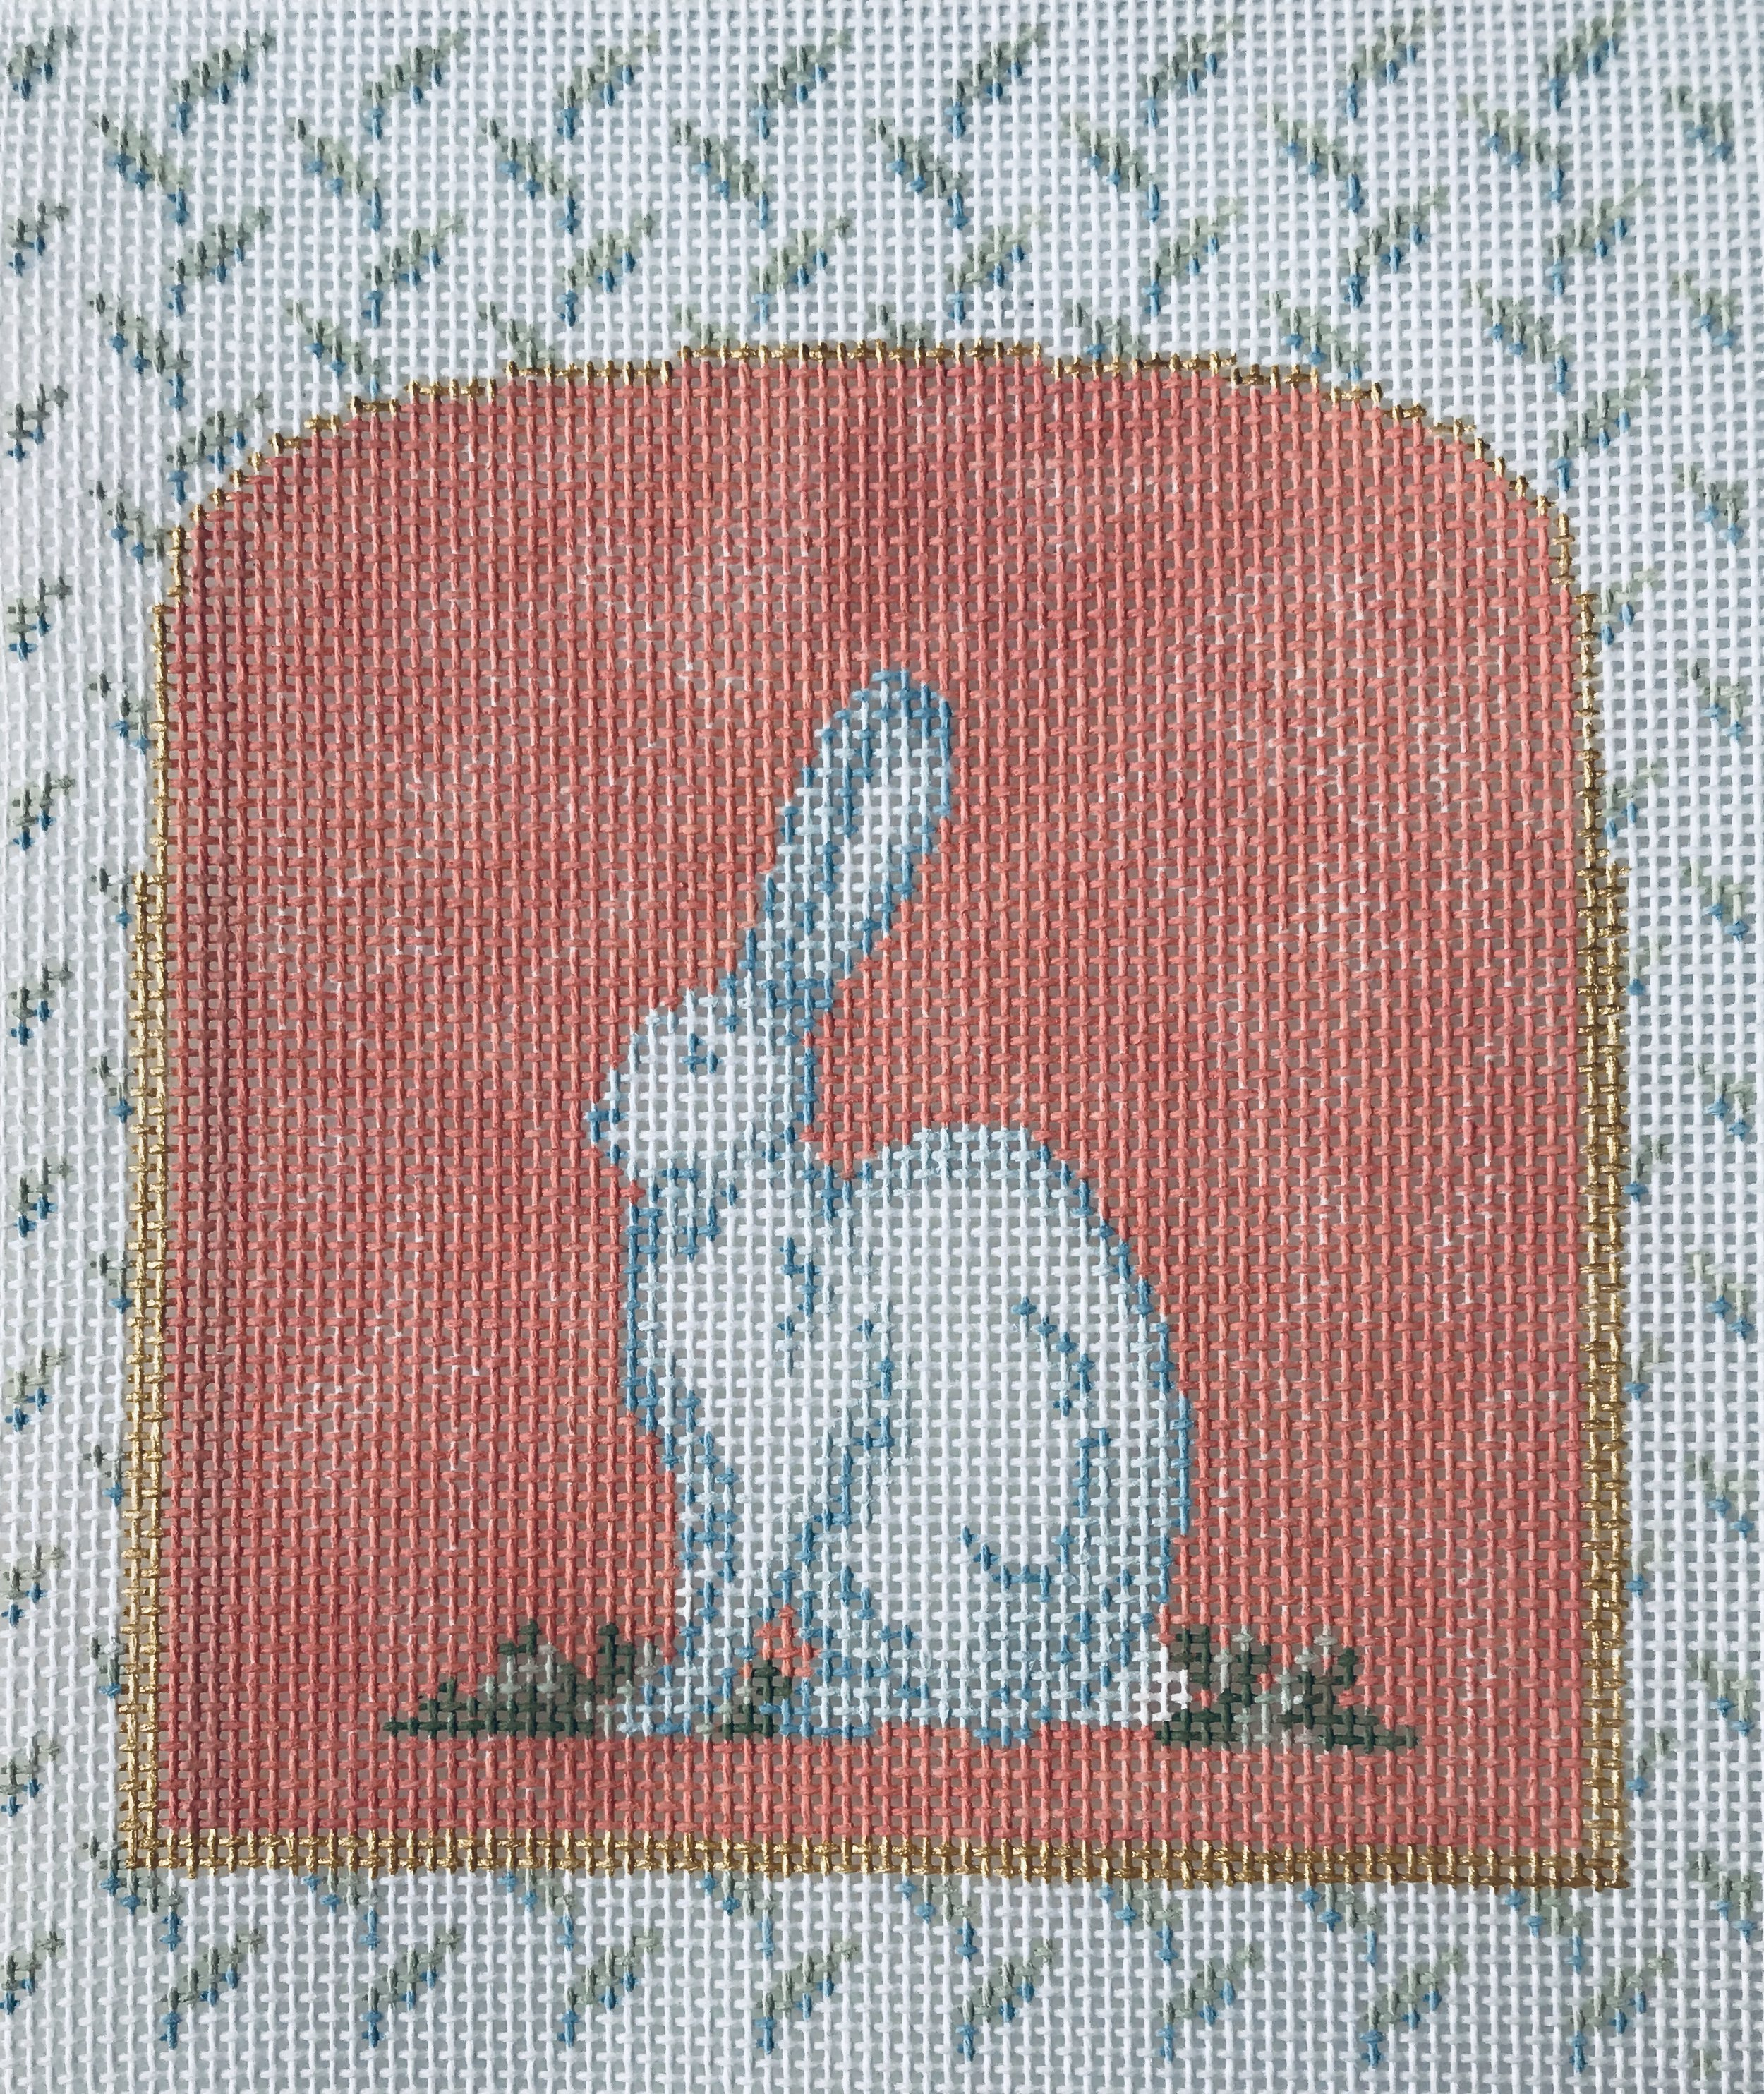 "Mother Nature Series - Hare 15BBB-4   5.5"" x 5"" on 18 mesh"